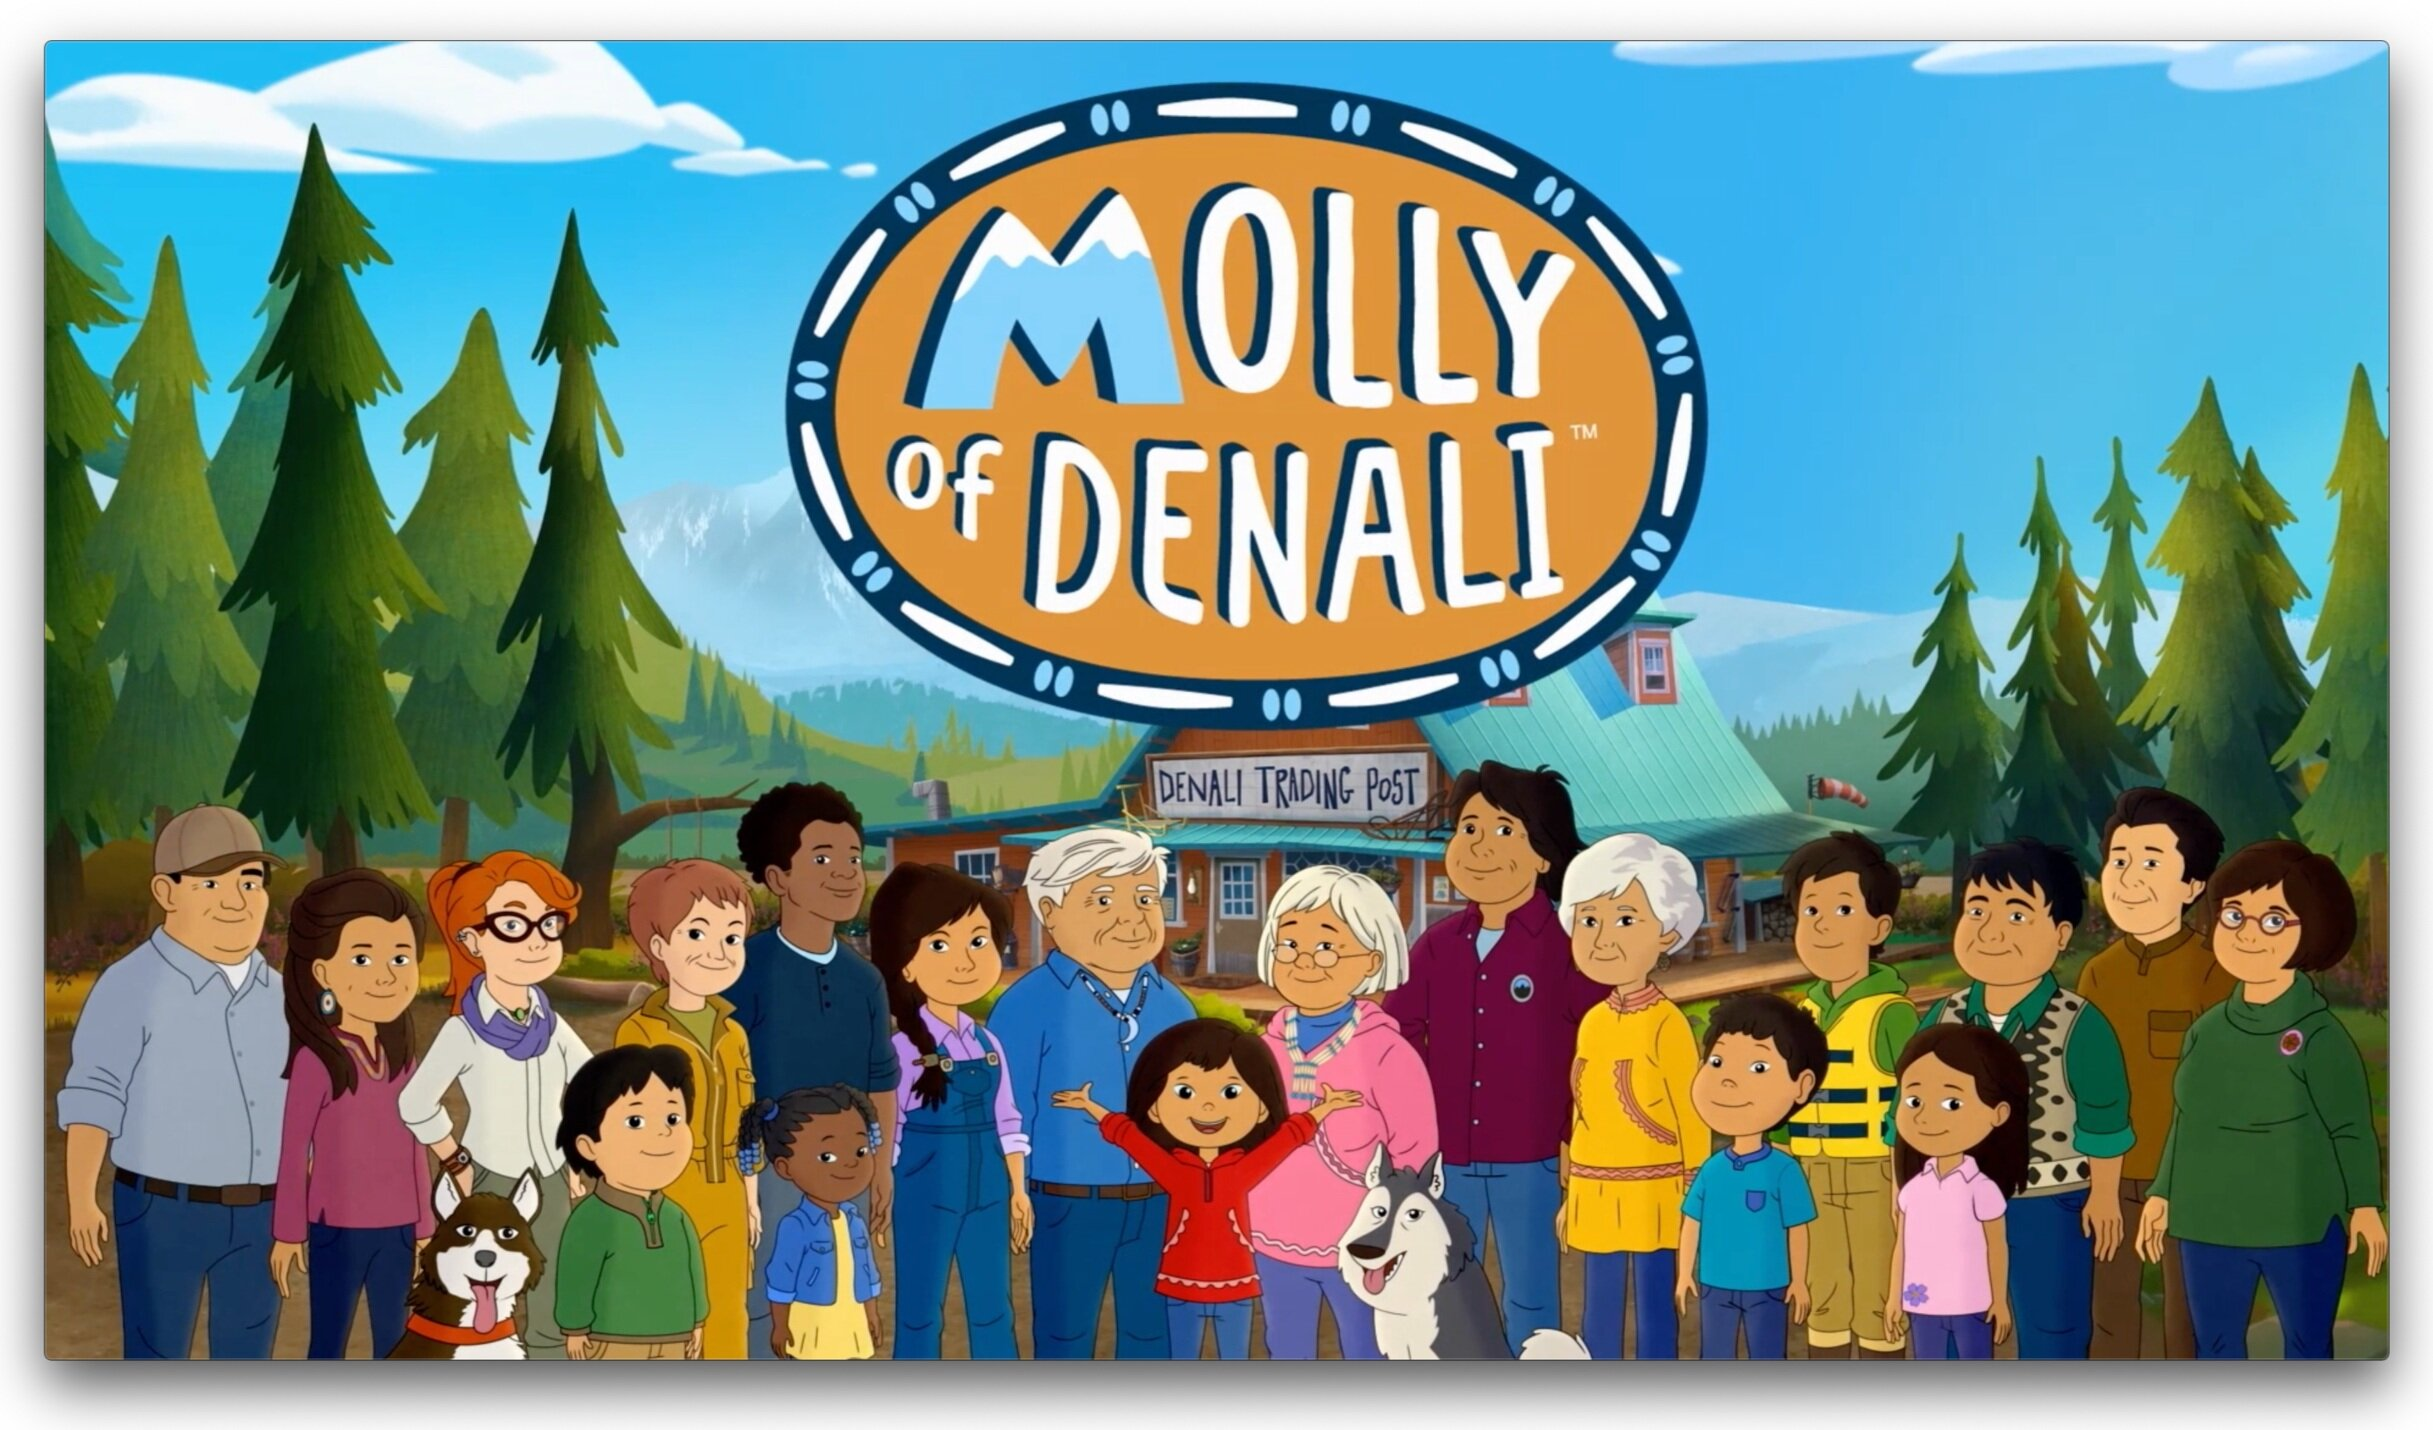 IMAGE CREDIT: Molly of Denali, Trademark/Copyright 2019 WGBH Educational Foundation. All rights reserved.